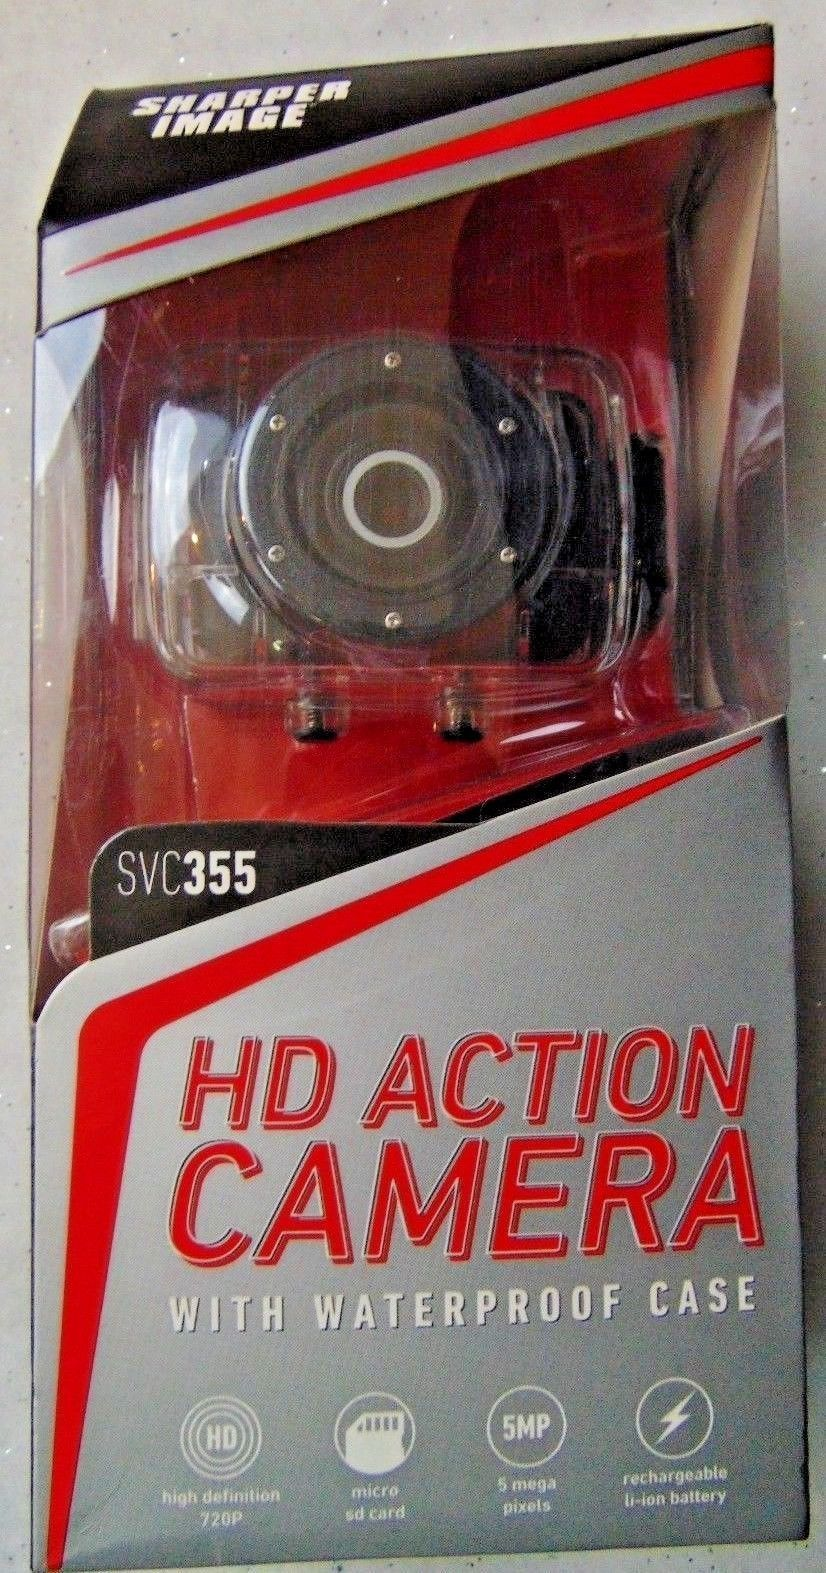 The Sharper Image Hd Action Camera Svc 355 And 8 Similar Items